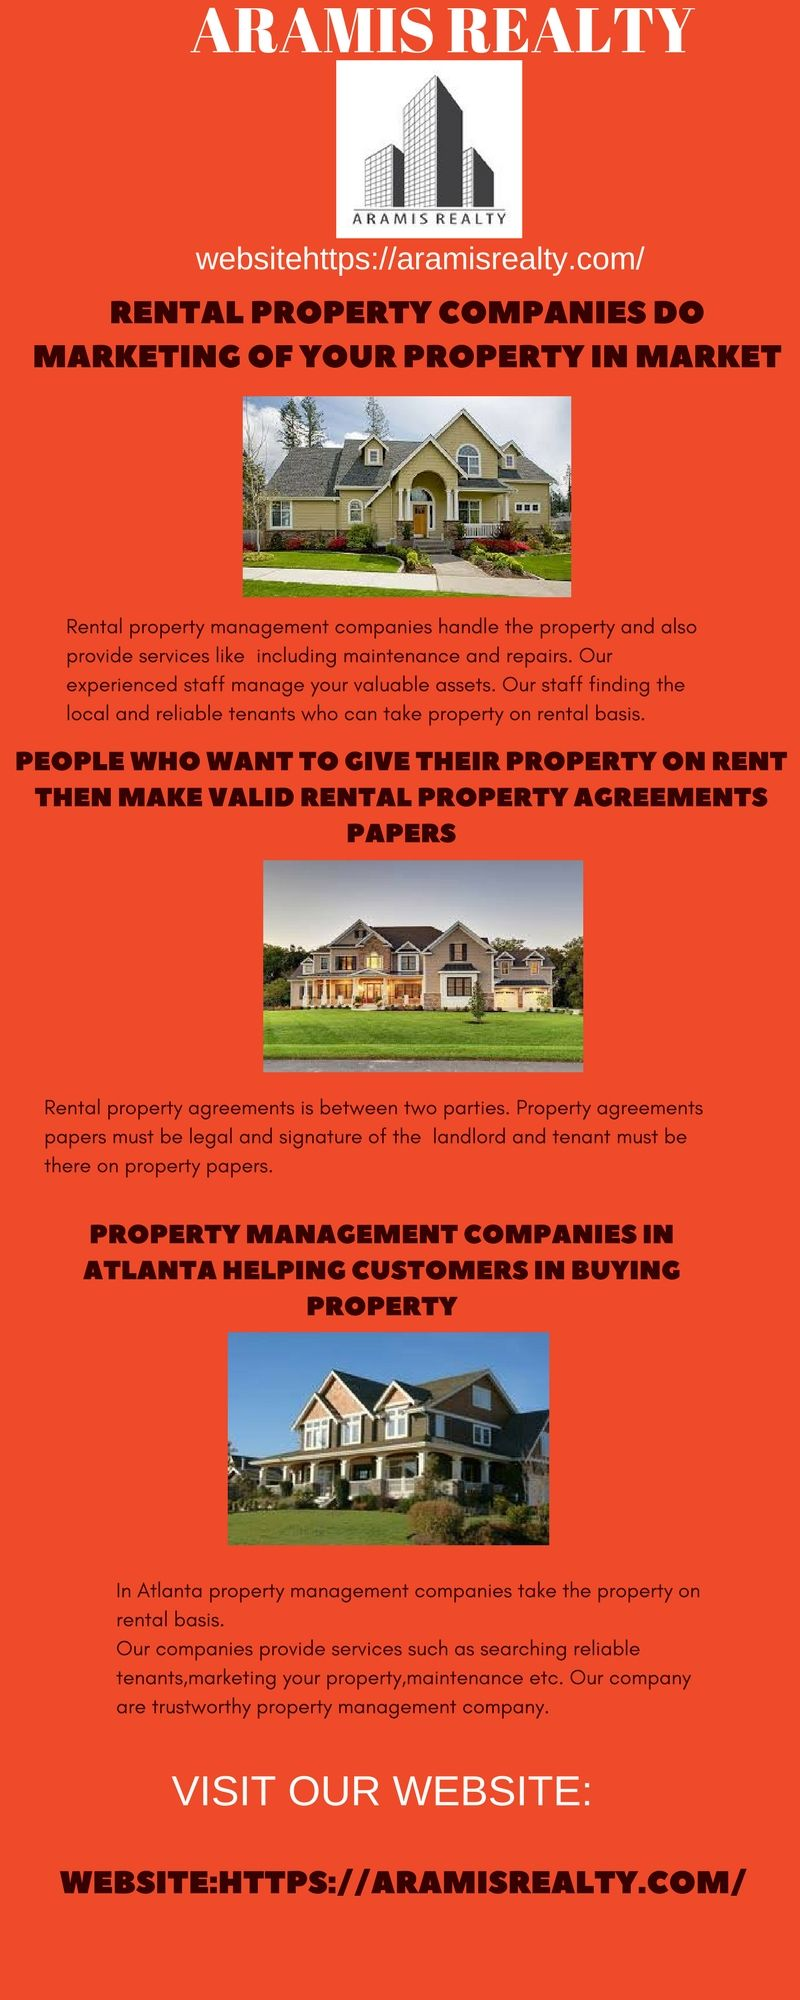 Rental Property Agreements Is Between Two Parties Property Agreements Papers Must Be Legal And Signa Property Management Rental Property Management Company